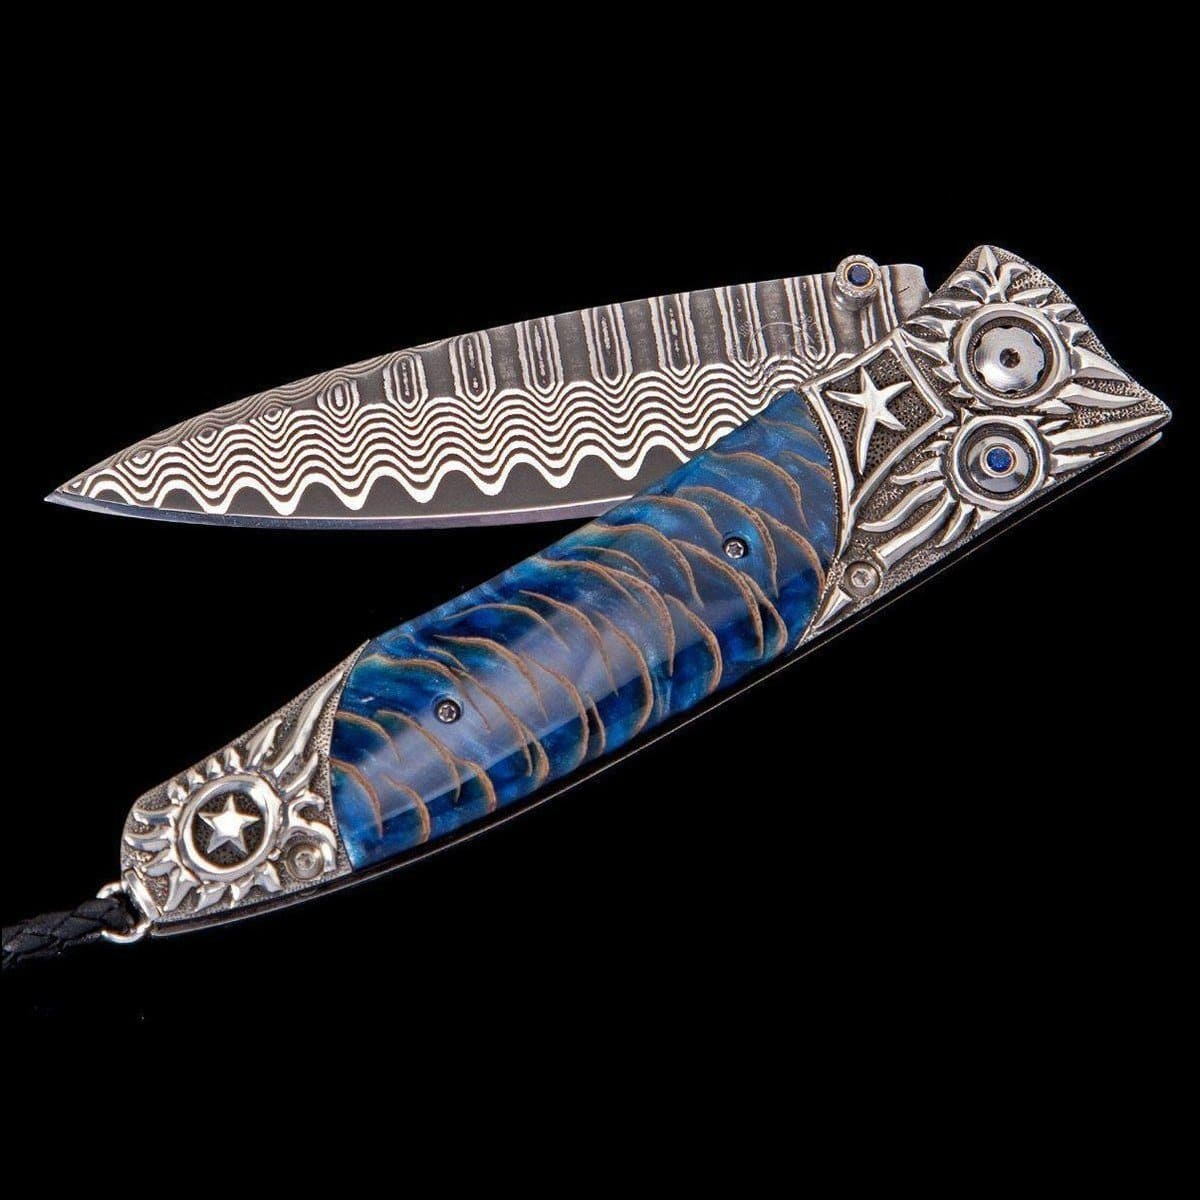 Gentac Silver Pine Limited Edition Knife - B30 SILVER PINE-William Henry-Renee Taylor Gallery